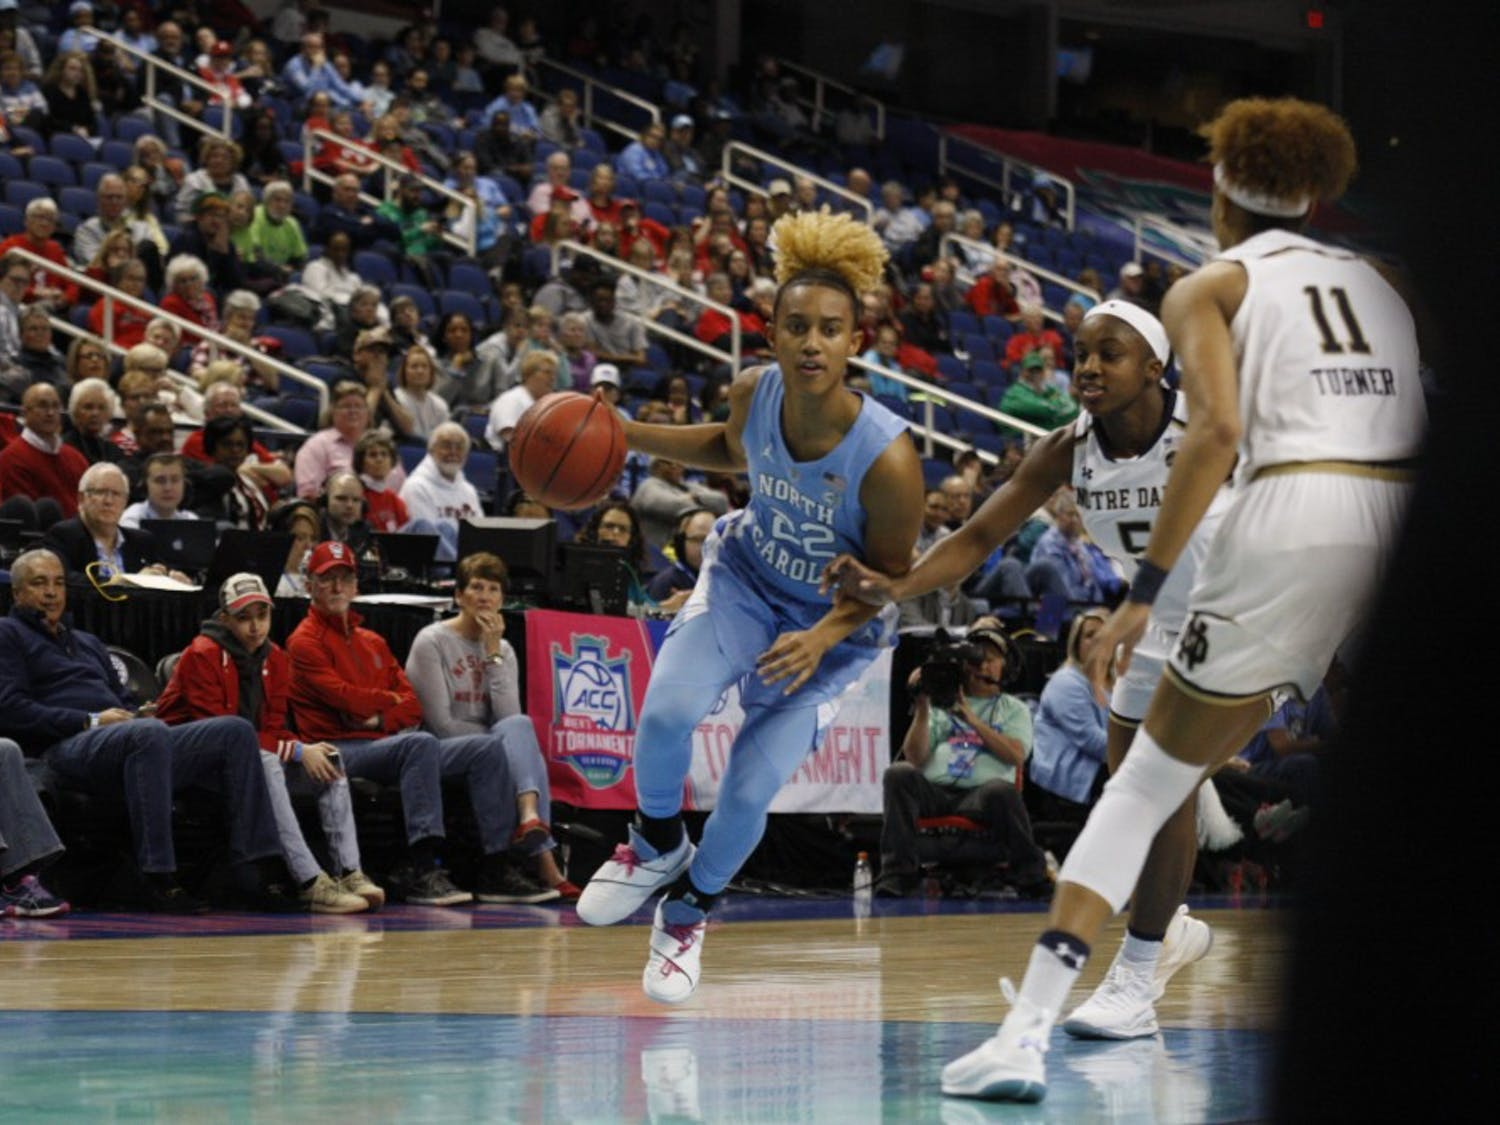 Redshirt senior guard Paris Kea (22)  drives past a Notre Dame defender during the second round of the ACC Tournament in Greensboro, N.C. on Friday, March 8, 2019. UNC lost to Notre Dame 95-77.